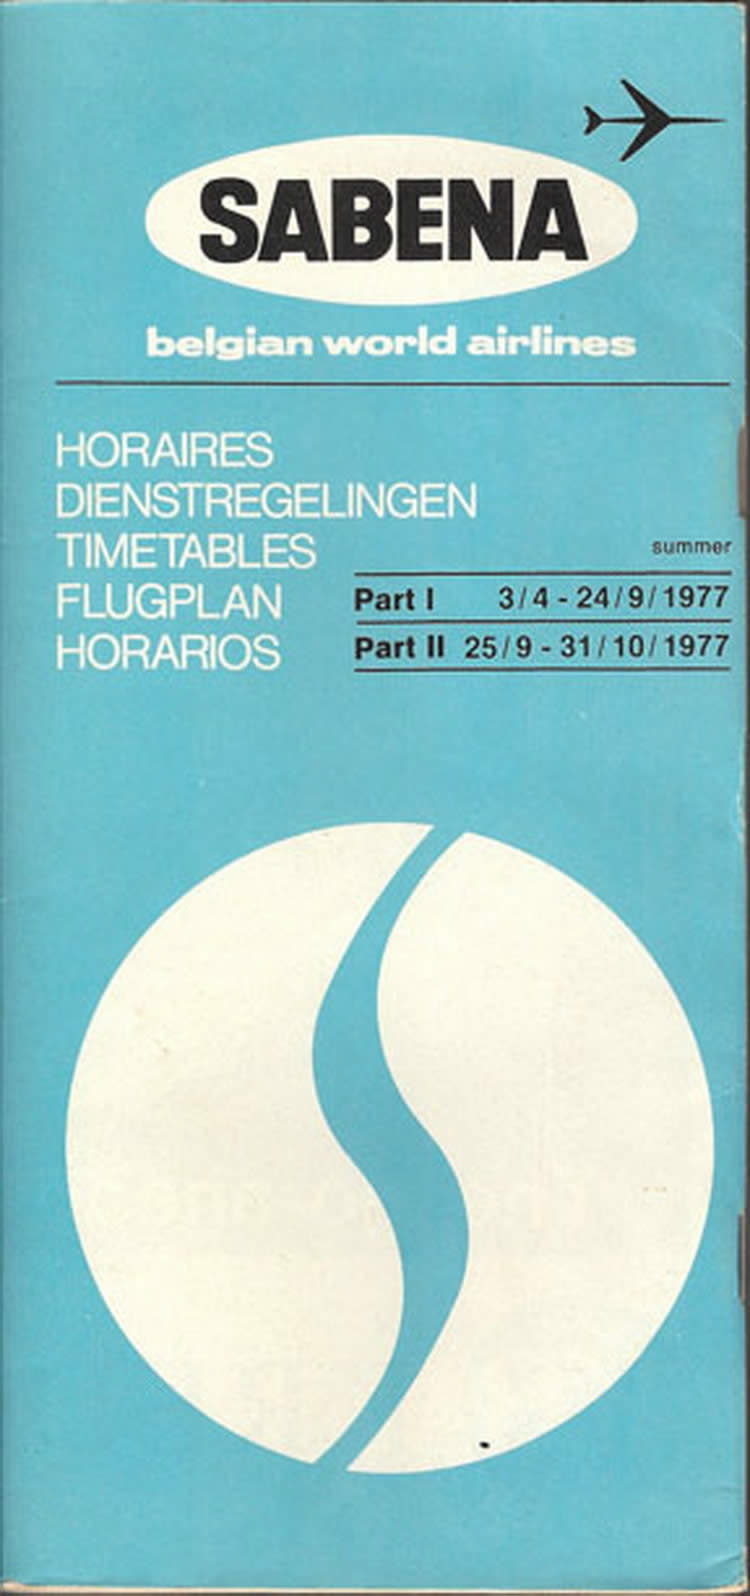 vintage airline timetable for SABENA airlines